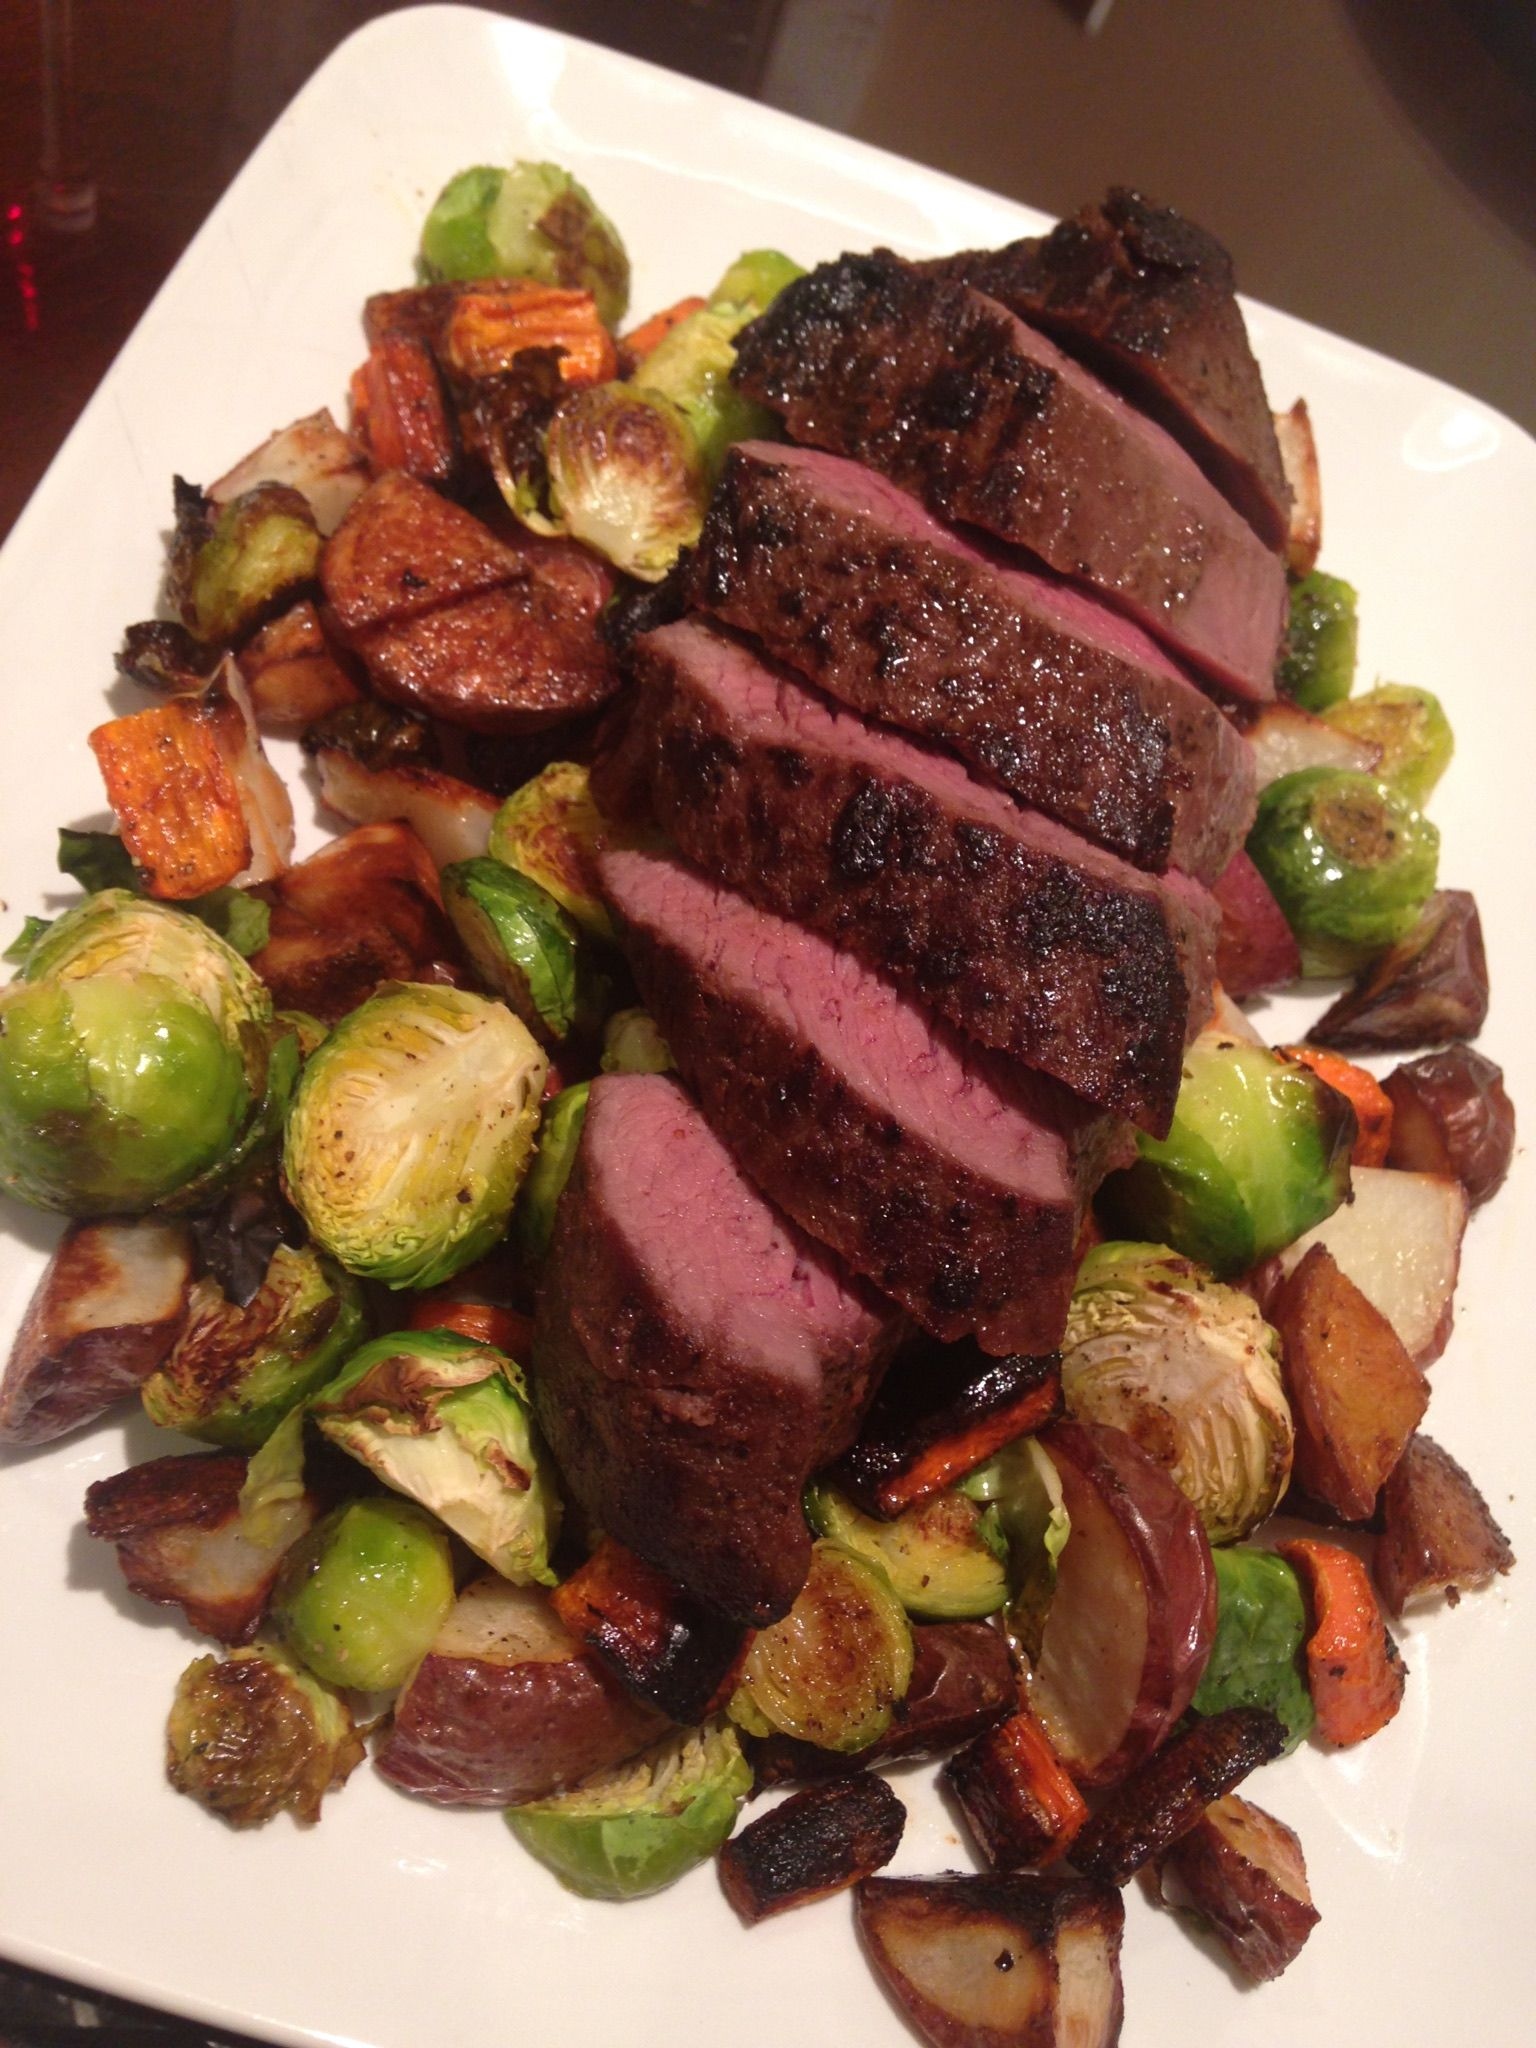 Venison With Roasted Brussels Sprouts Carrots And Potatoes Roasted Brussel Sprouts Spinach Artichoke Chicken Brussel Sprouts